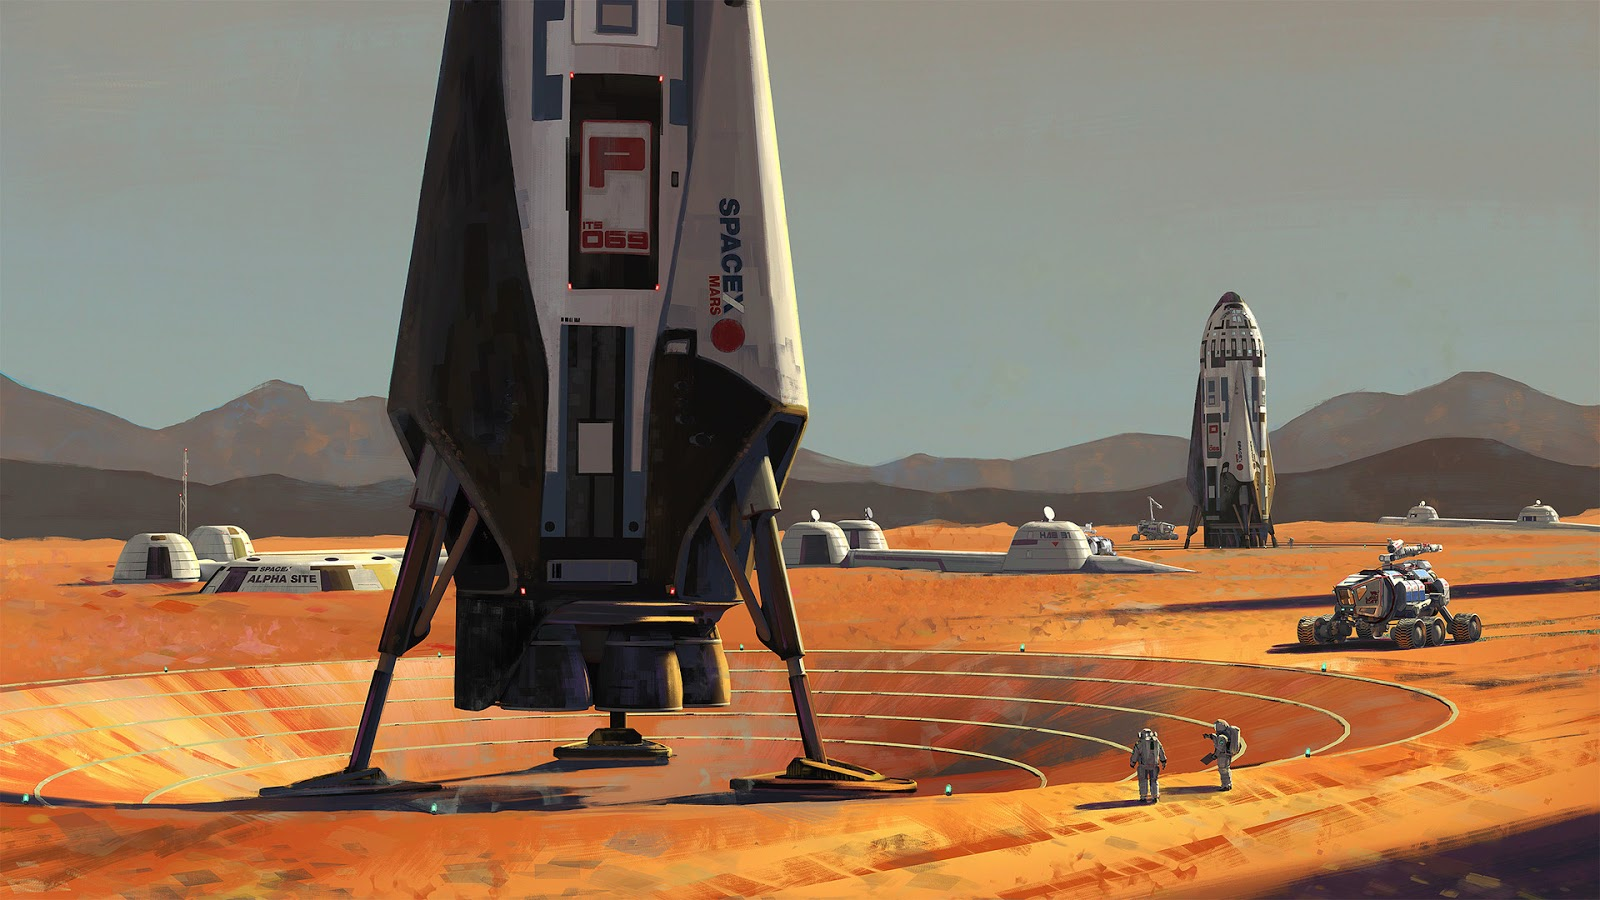 Wallpaper HD - SpaceX Mars Exploration illustration in 1920x1080 pixels